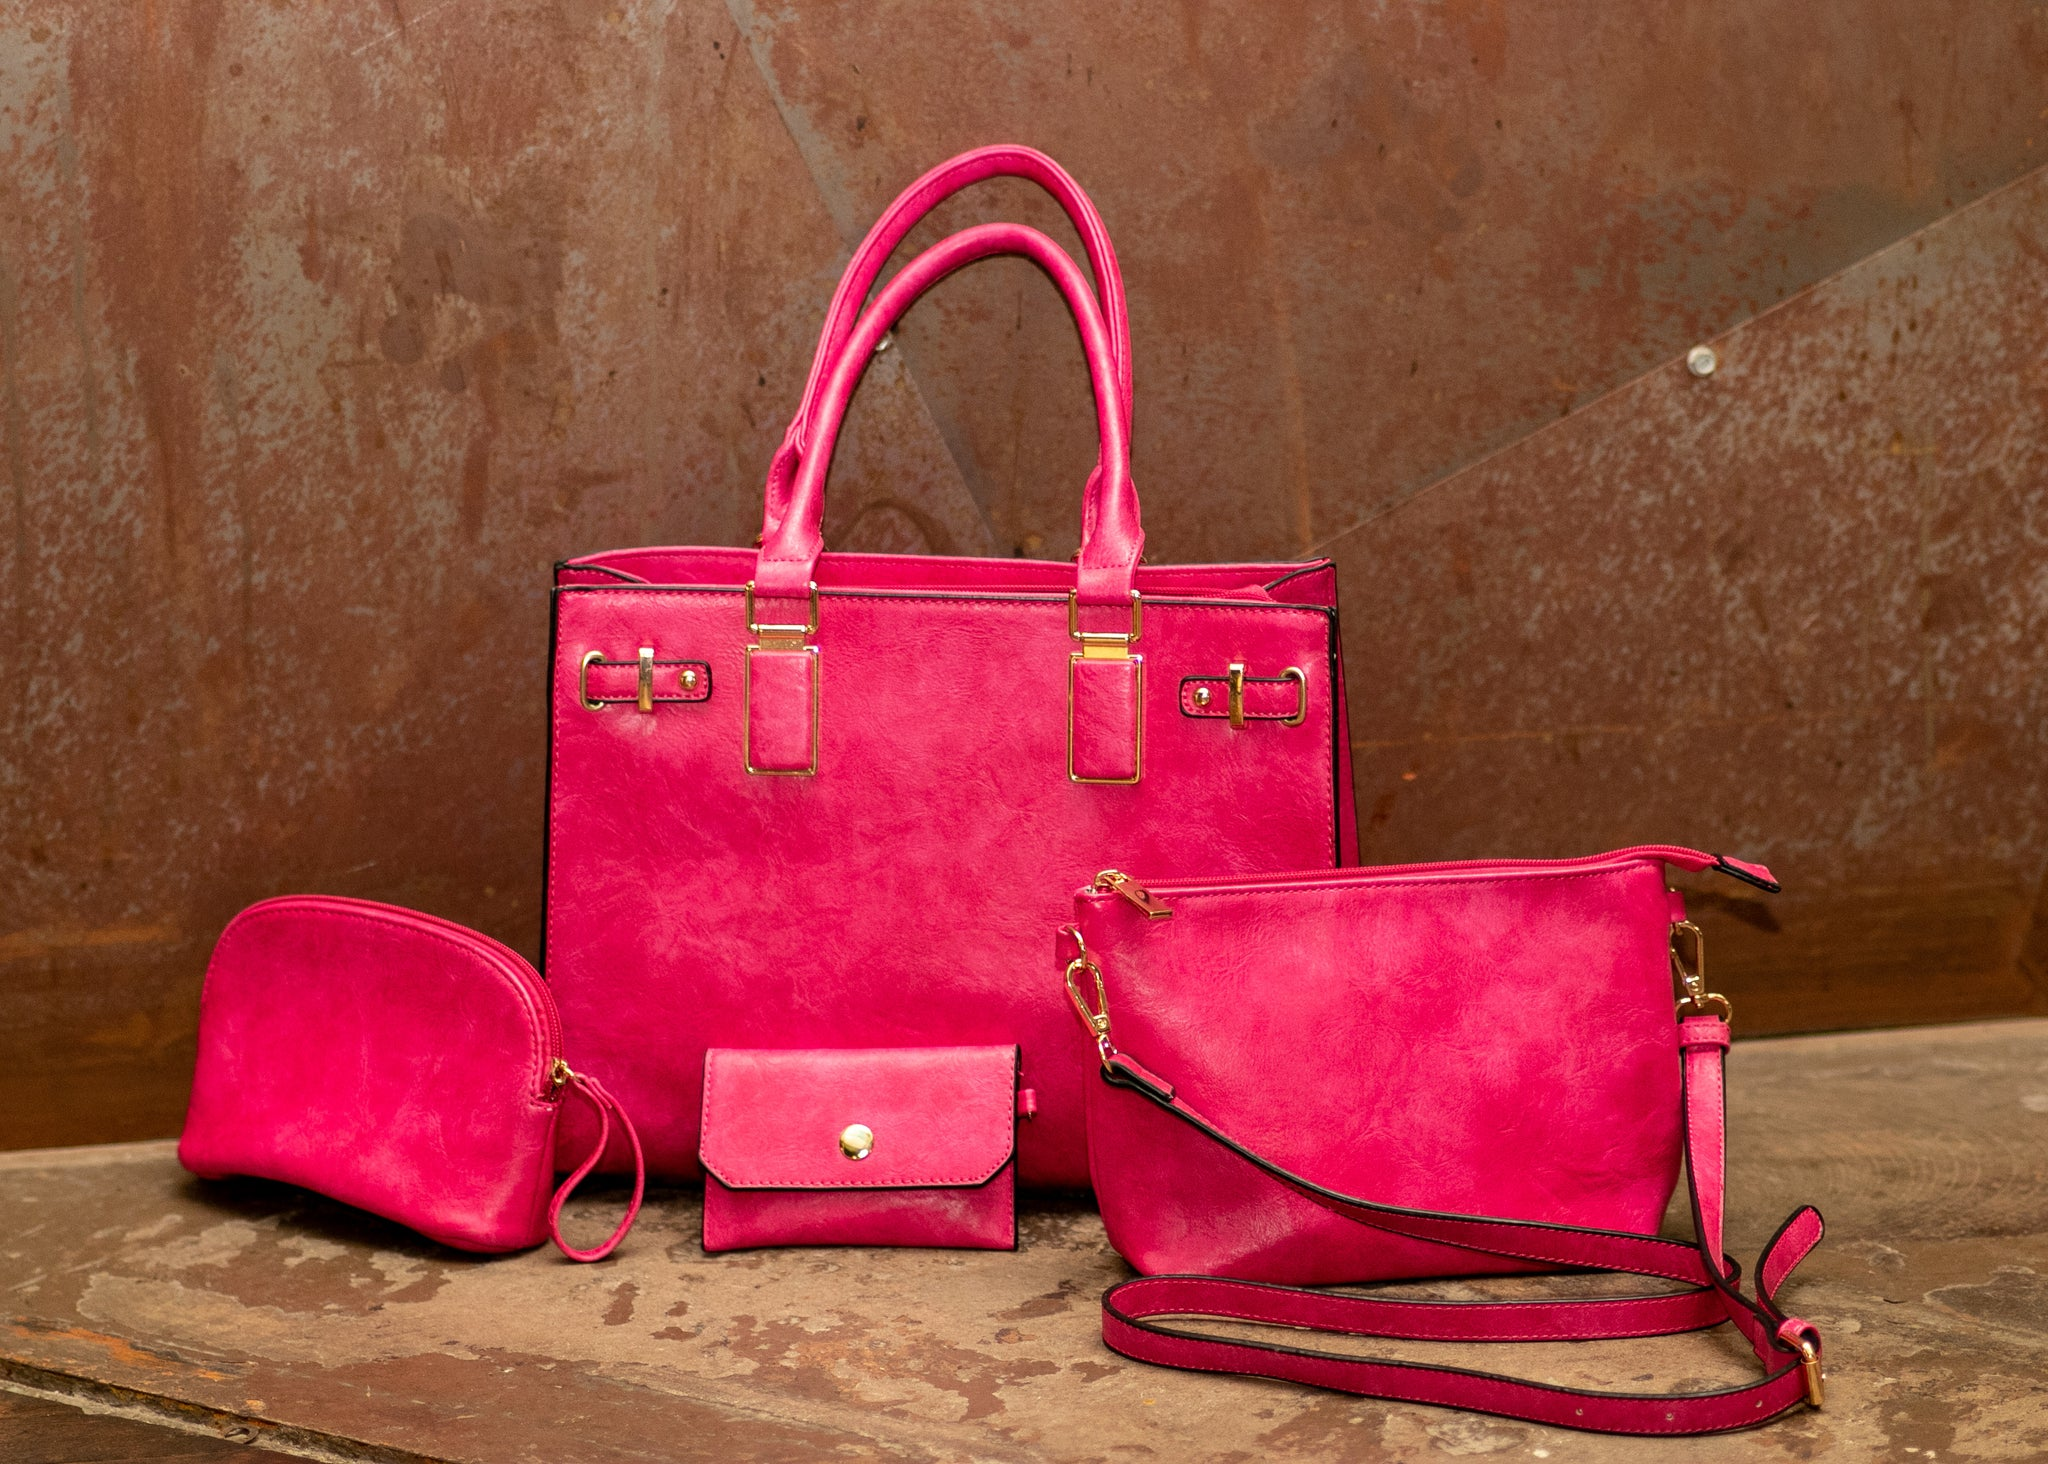 Pink Business Tote Set - 4 piece